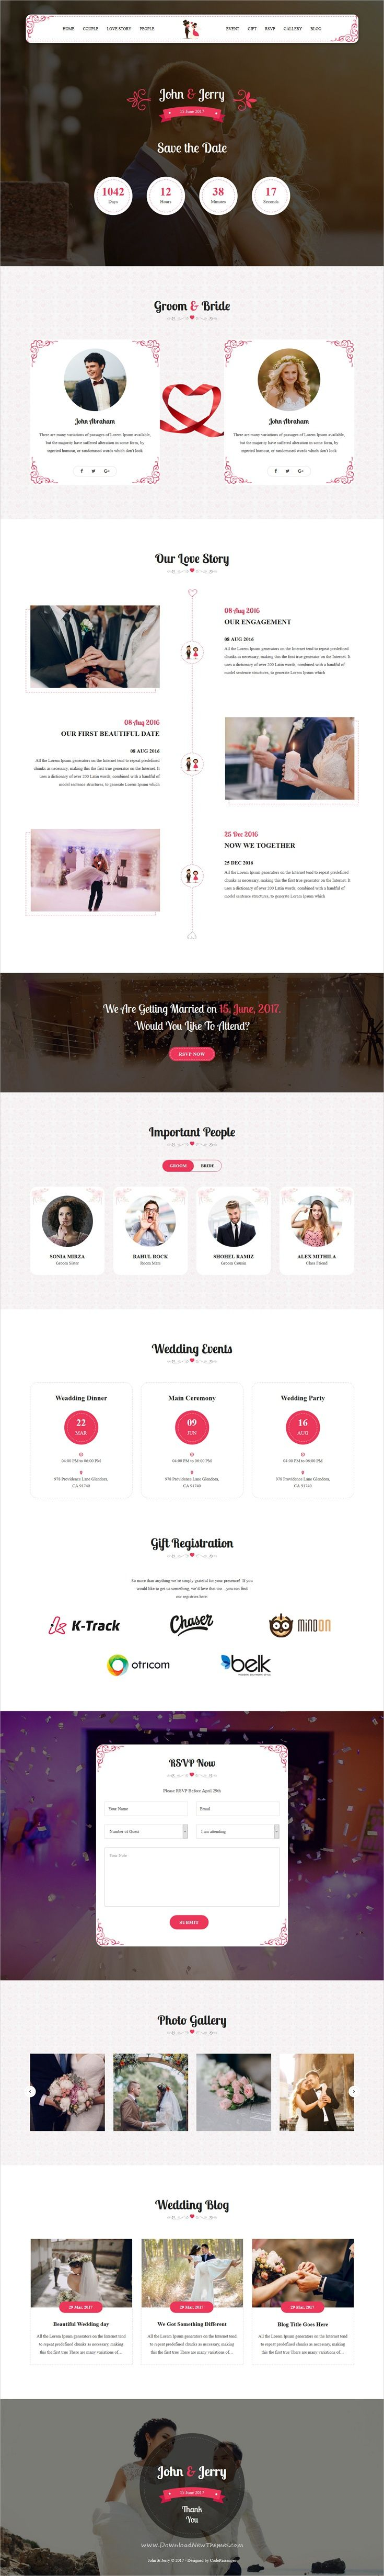 John and Jerry is clean and modern design 3in1 responsive #WordPress theme for #wedding events website download now > https://themeforest.net/item/john-jerry-a-wordpress-wedding-theme/19852079?ref=Datasata